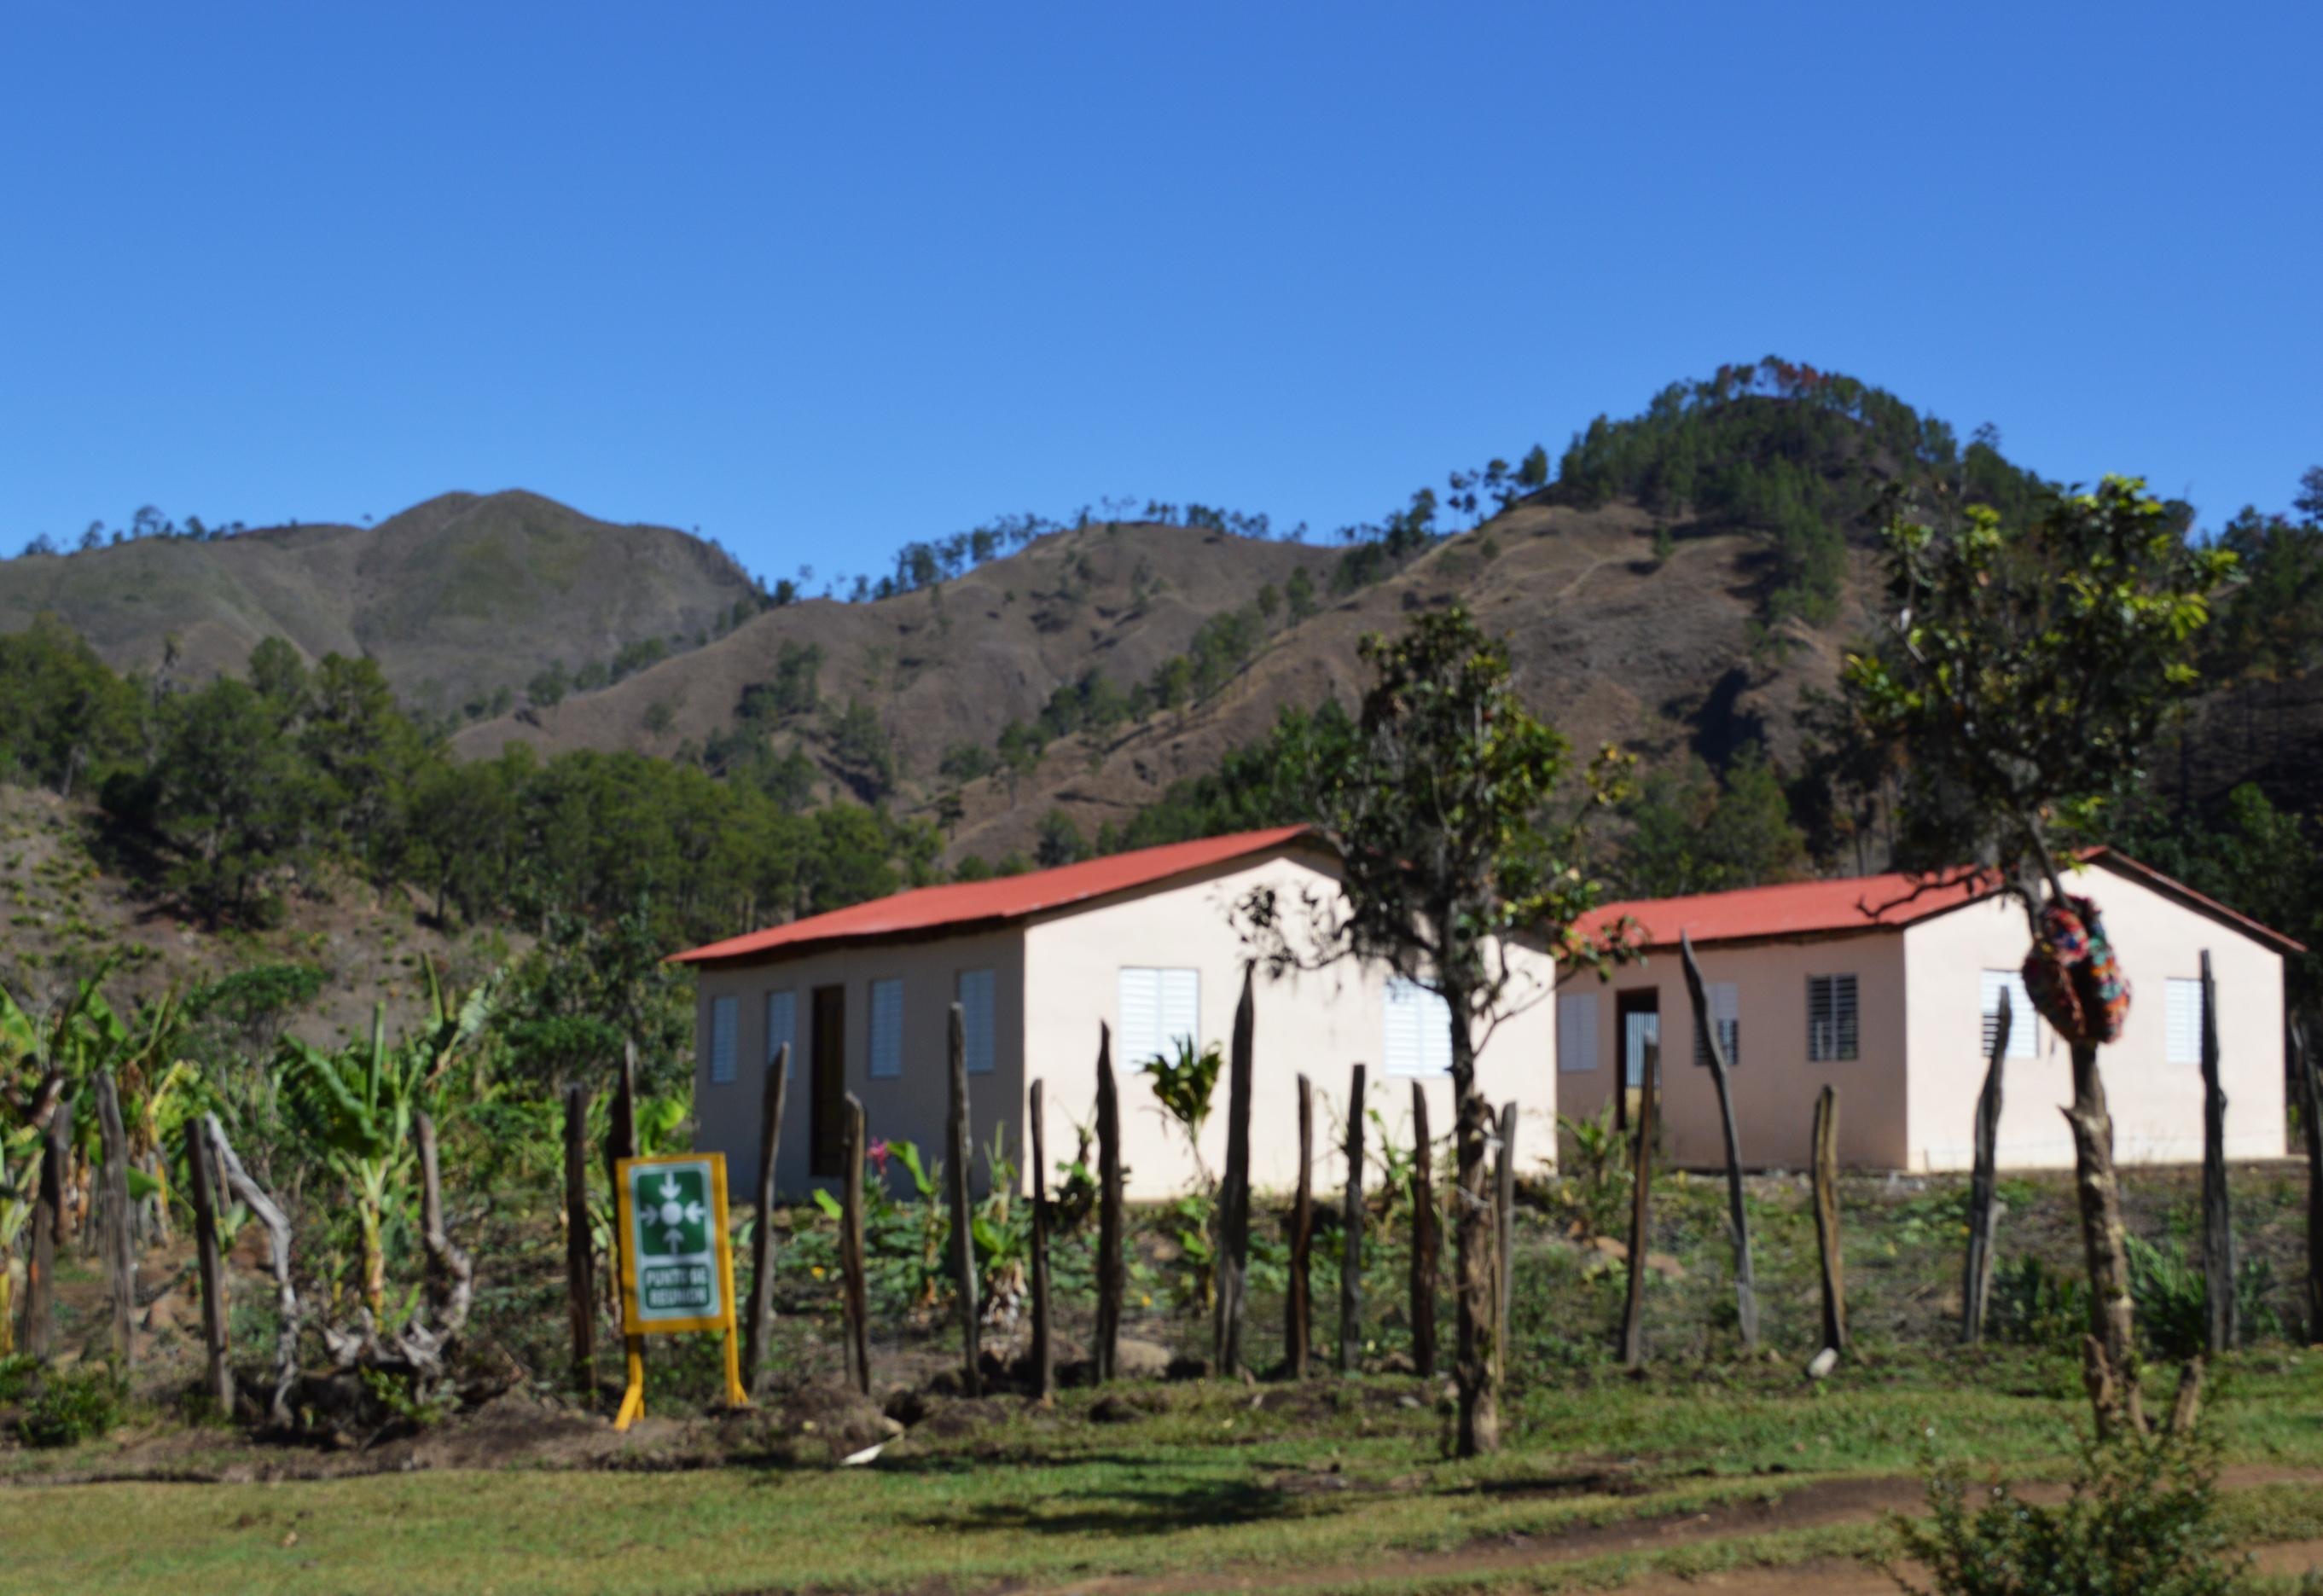 First Hondo Valle Primary School & Village Medical Clinic, built by GoldQuest